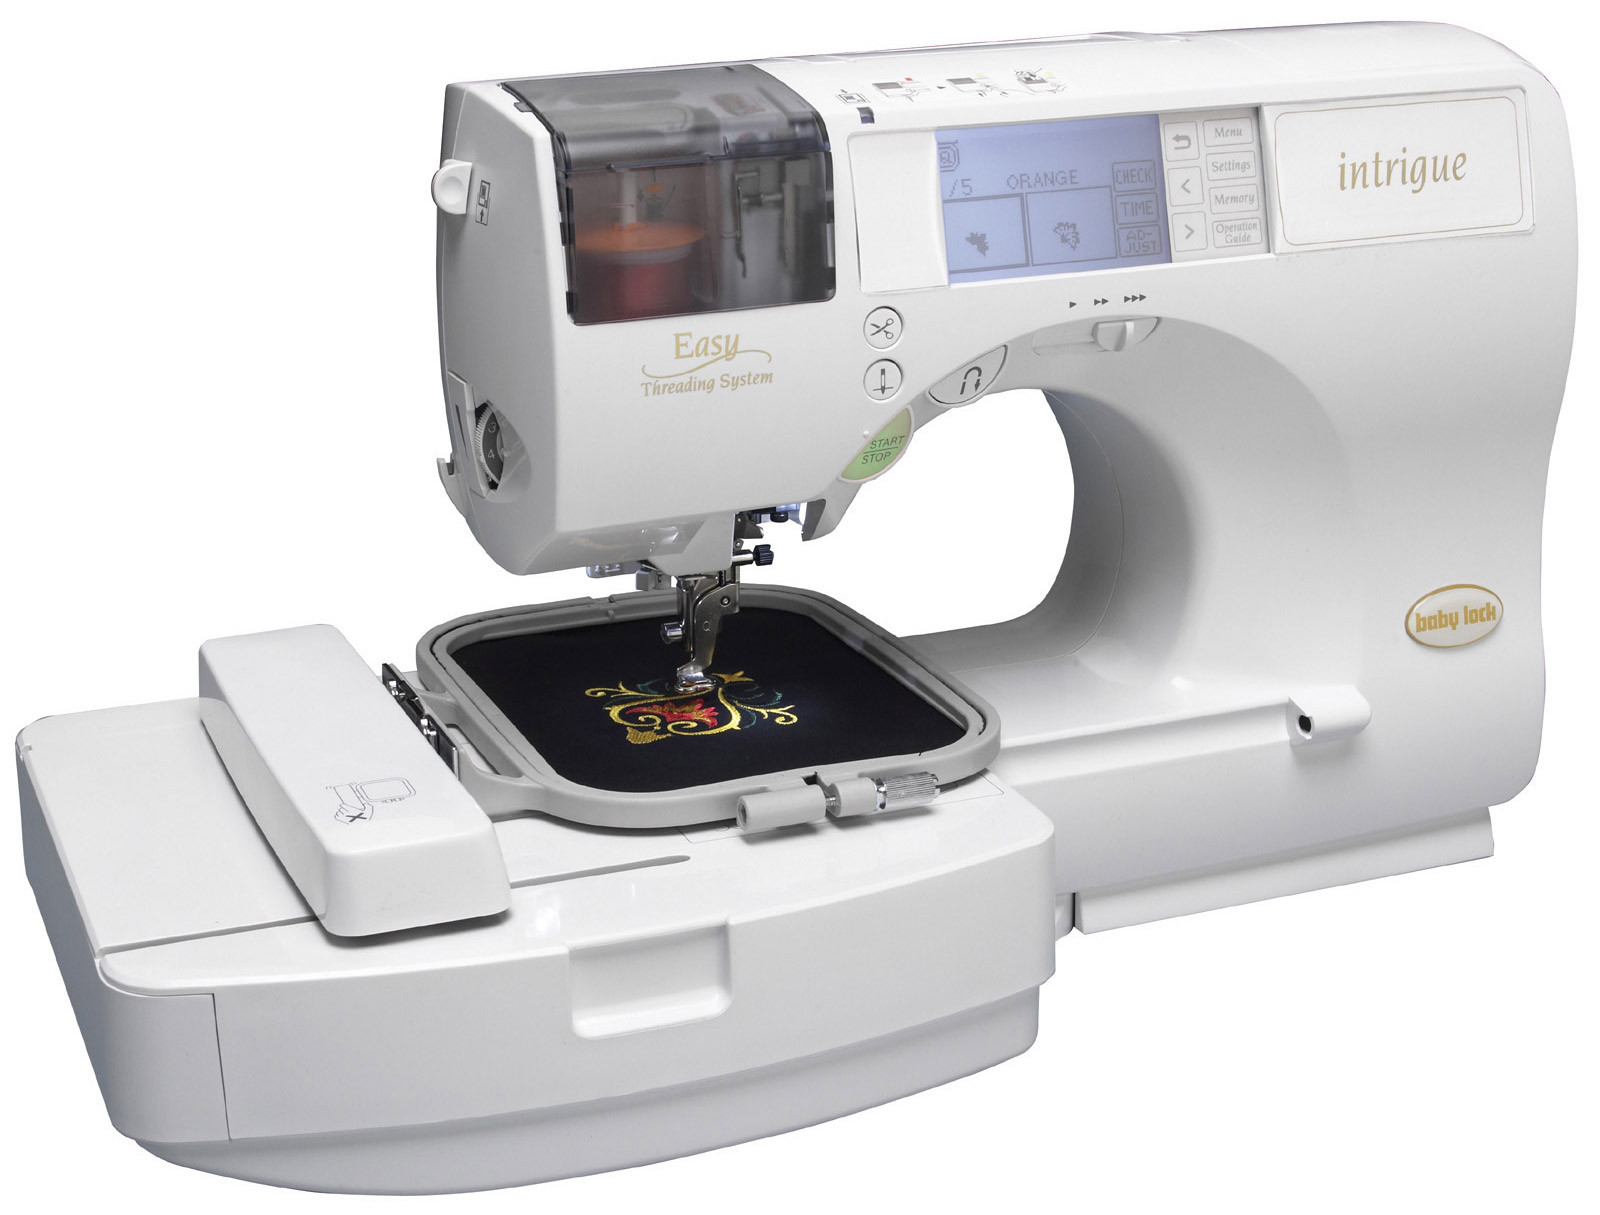 Sewing and Embroidery Machine Elegant Baby Lock Embroidery and Sewing Machine Intrigue Int Of Unique 48 Pics Sewing and Embroidery Machine